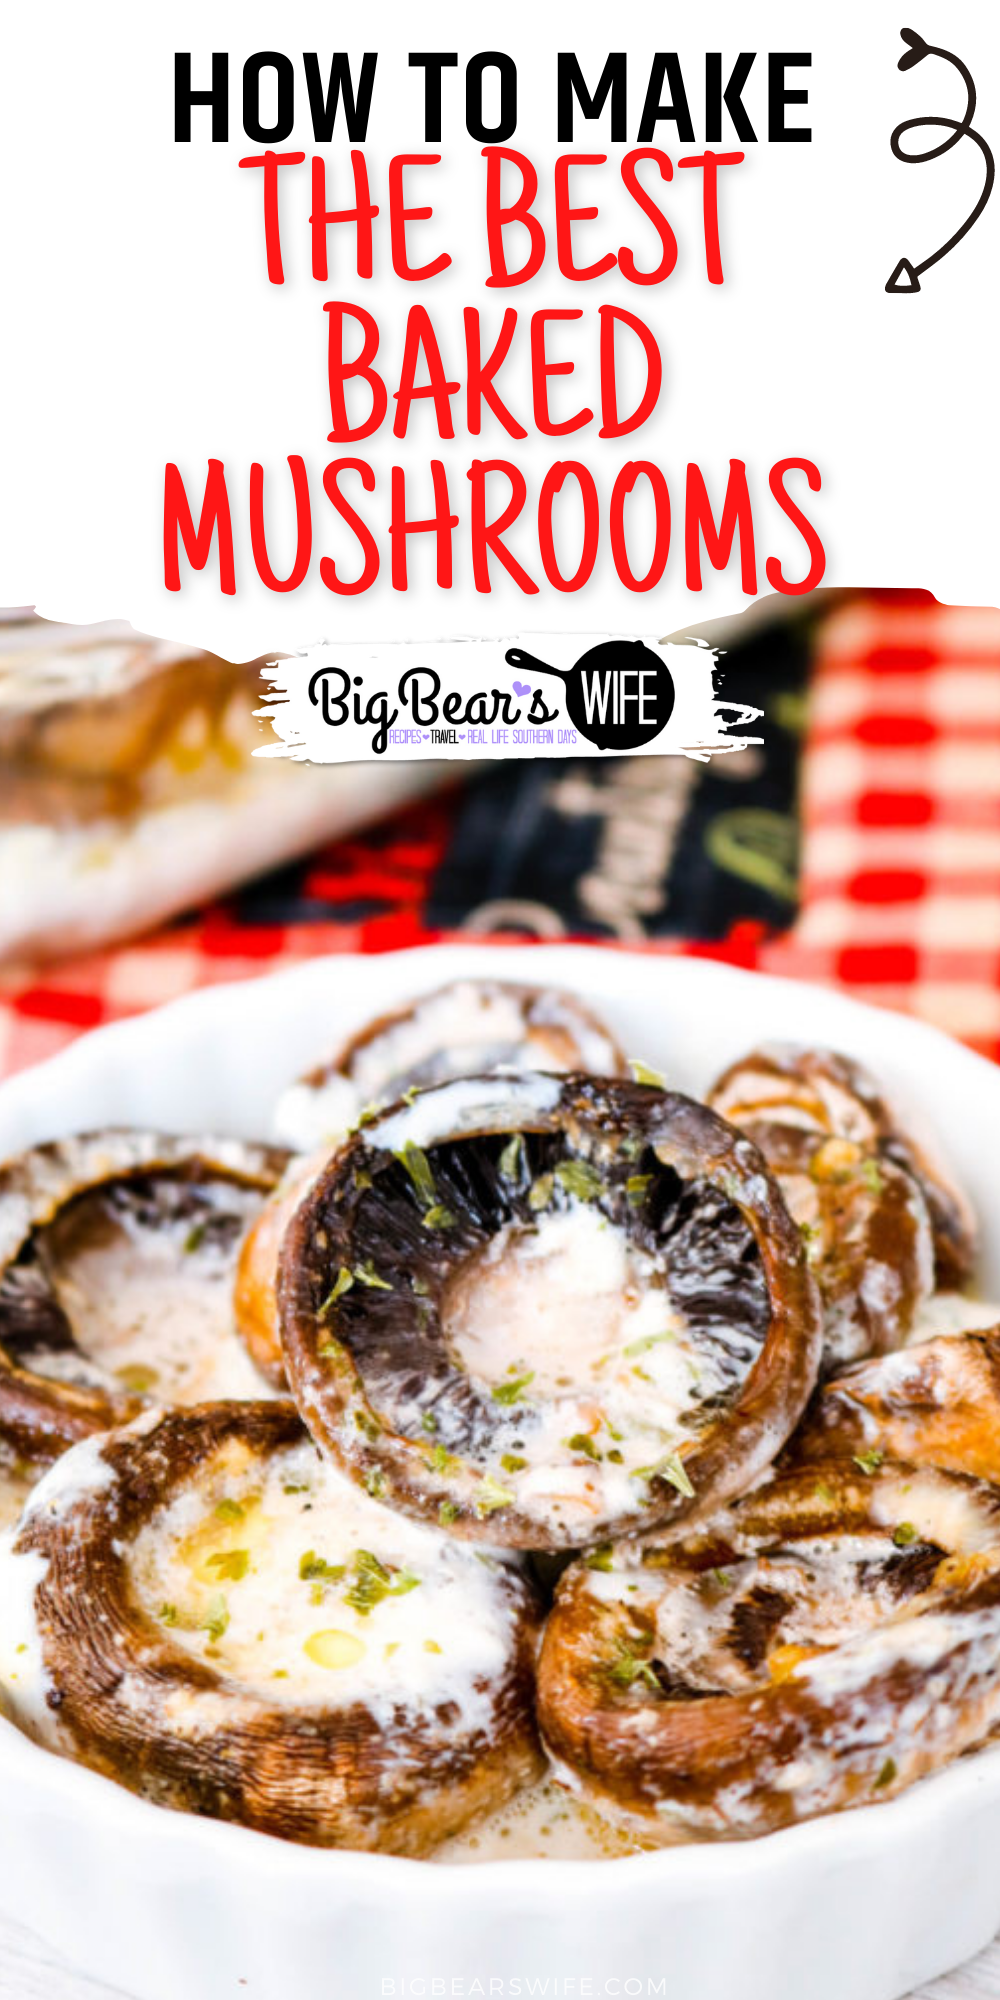 These mushrooms are baked in a tasty seasonedcream sauce and they're perfect as a party appetizer or as a side dish for lunch or dinner! They may beThe BEST Baked Mushrooms I've ever had.#bakedmushrooms #mushrooms   via @bigbearswife